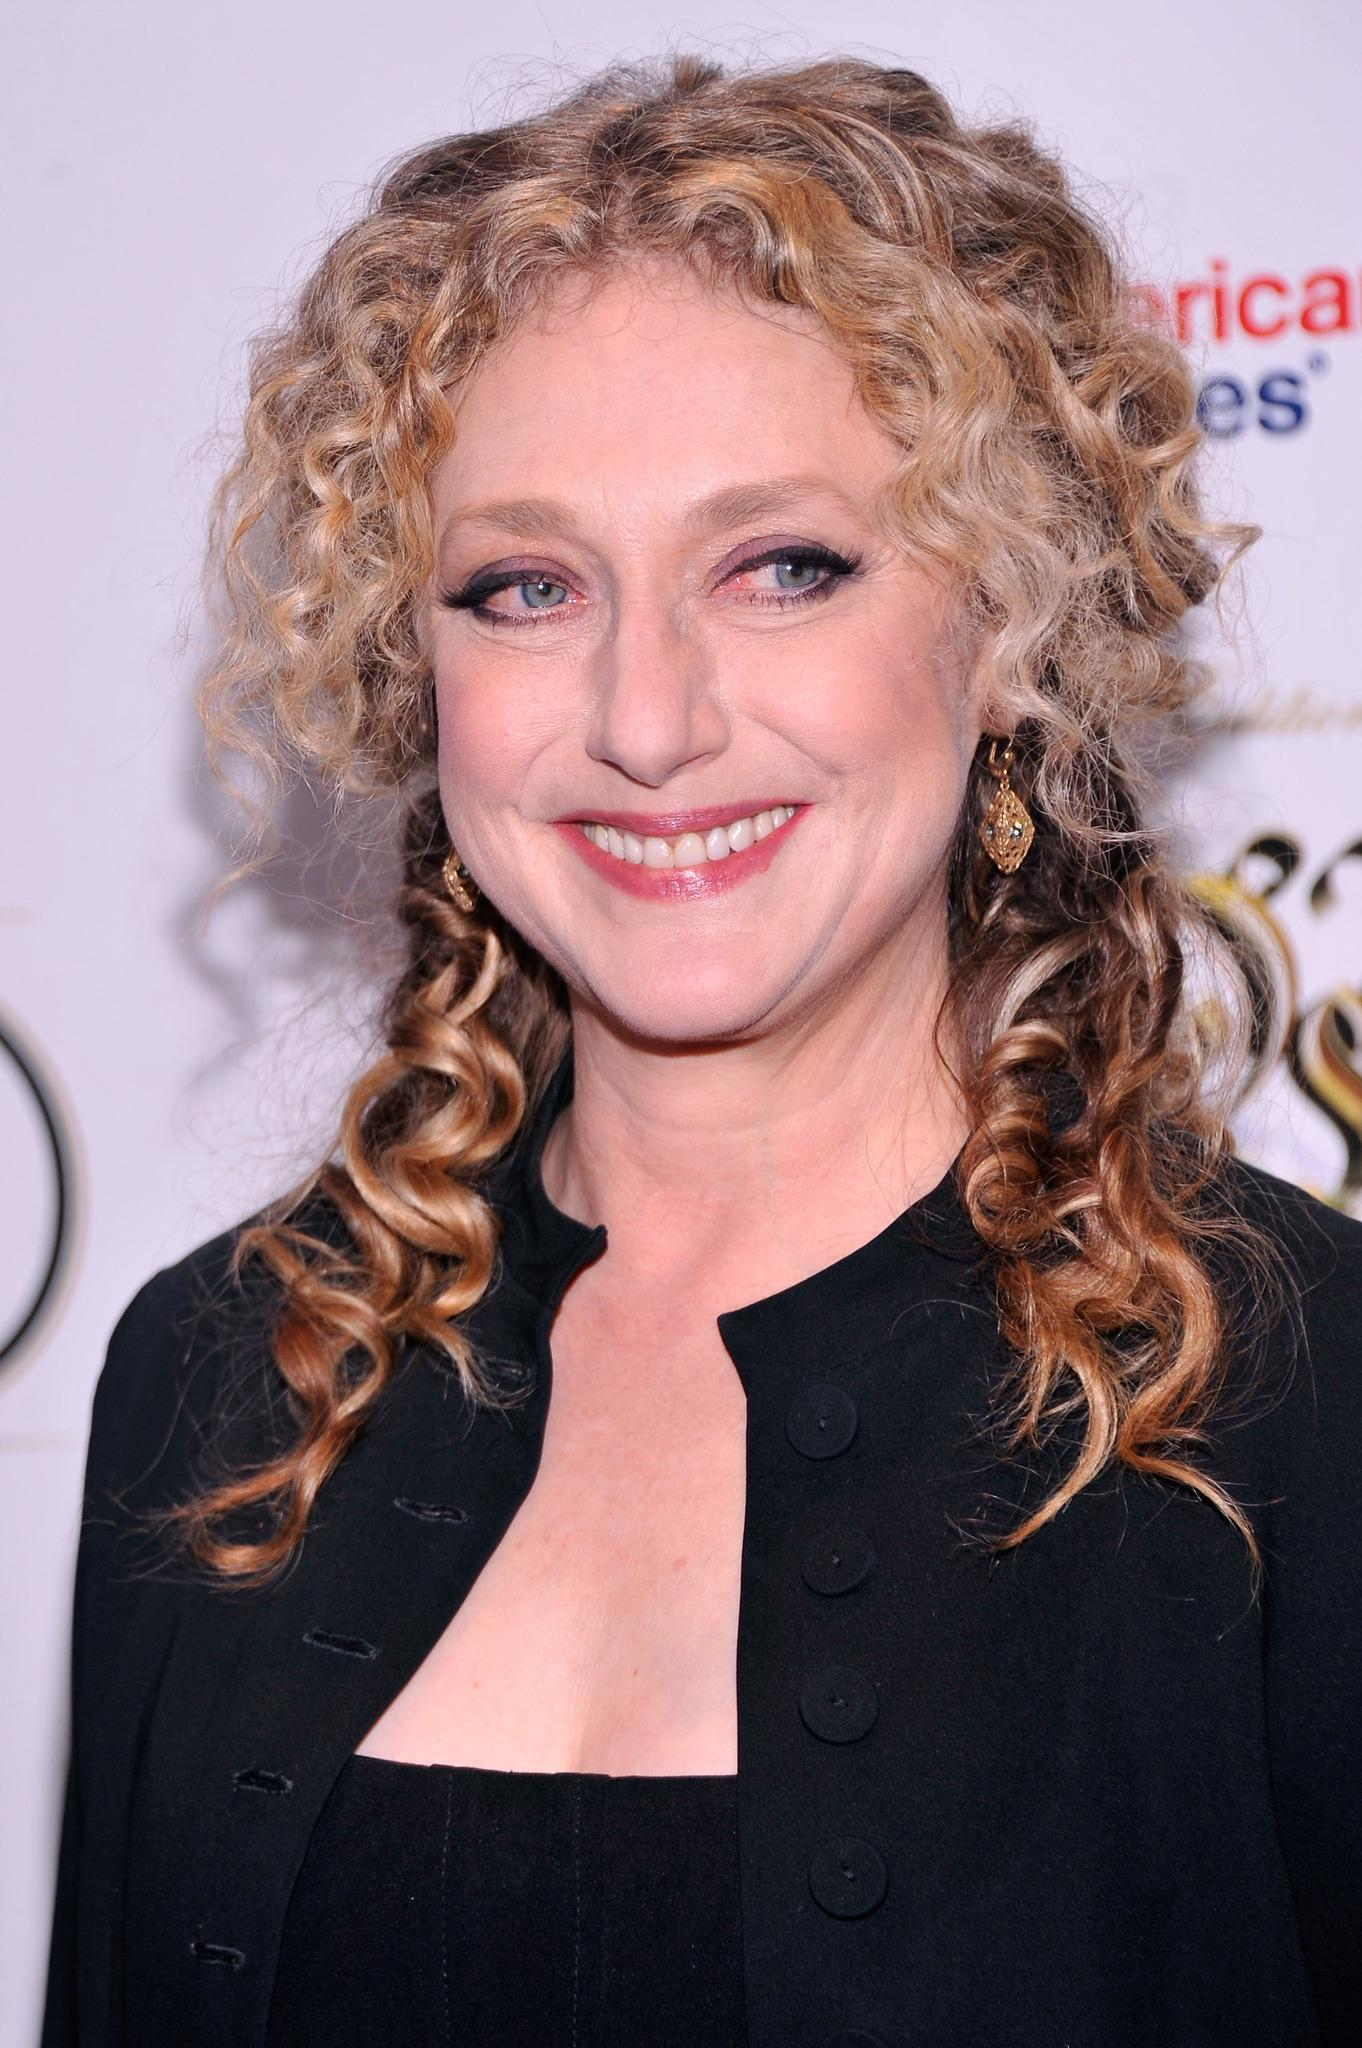 Carol Kane earned a  million dollar salary - leaving the net worth at 5 million in 2018